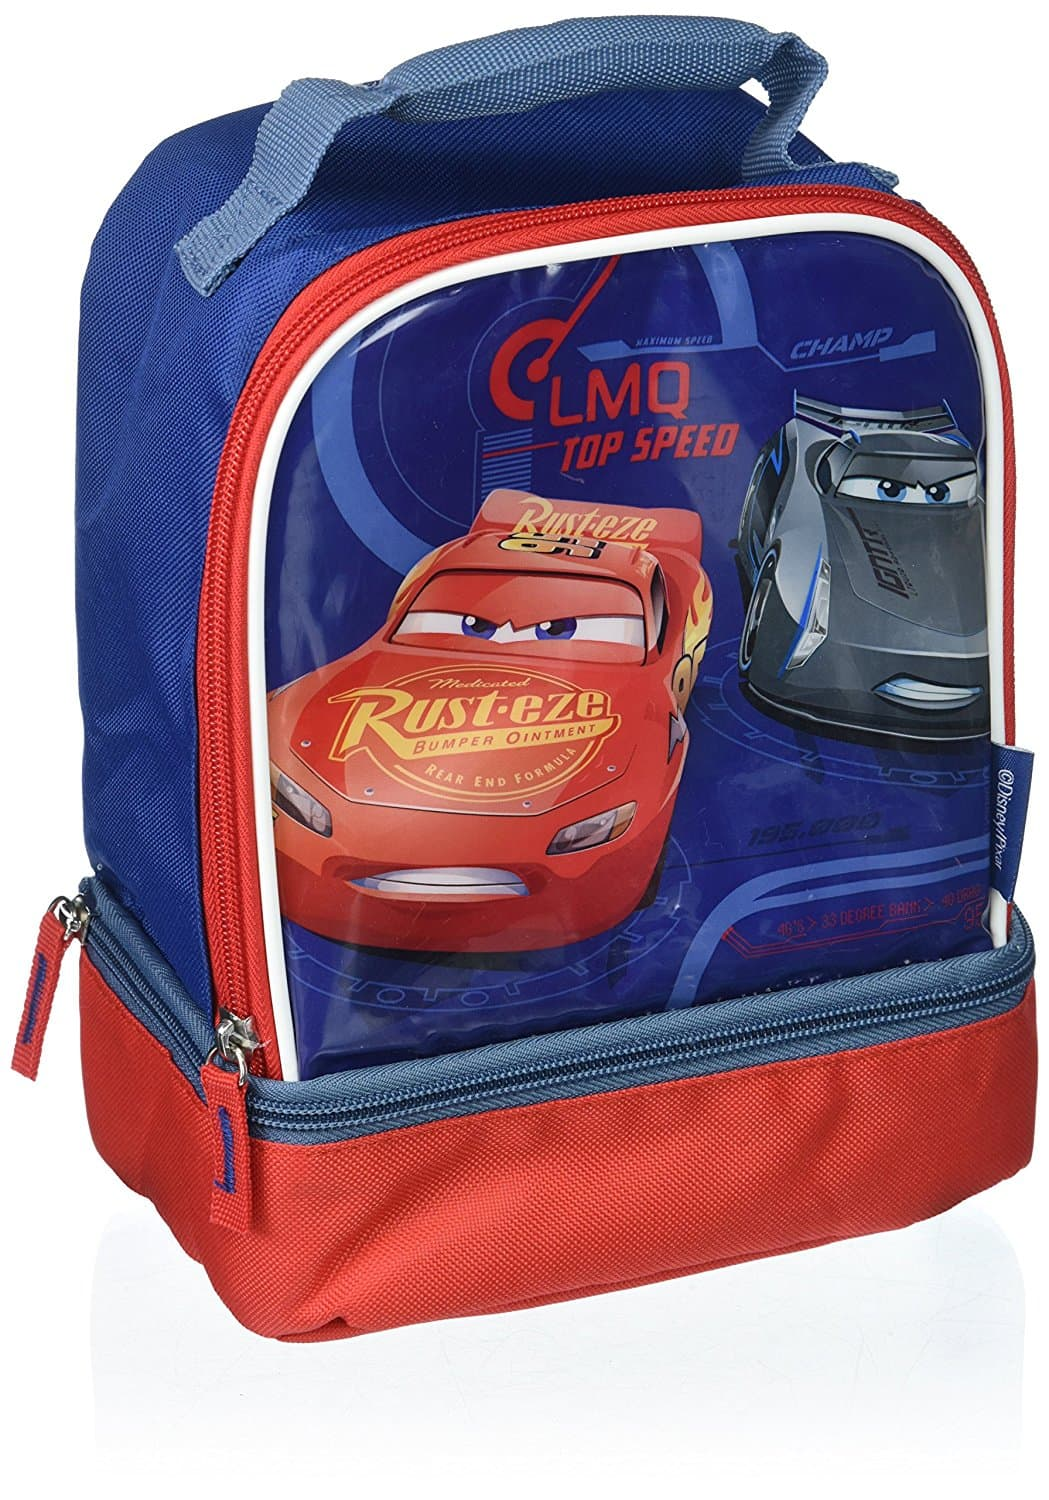 Amazon Warehouse Deals: Thermos Dual Compartment Lunch Kit, Cars 3 Tow Mater only $2.74